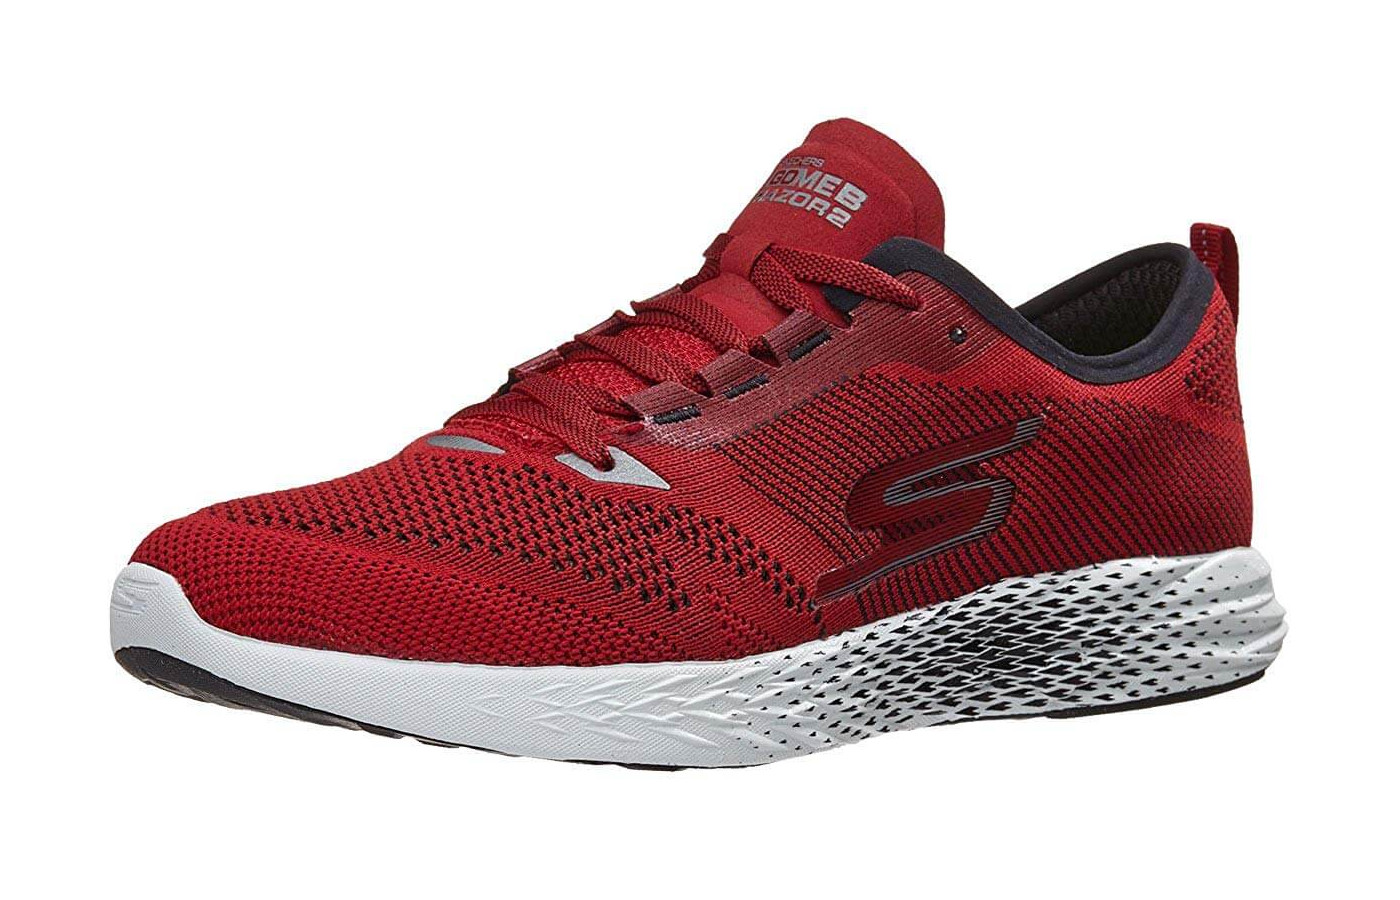 61cc682ac37 Skechers GoMEB Razor 2 Review - Buy or Not in May 2019